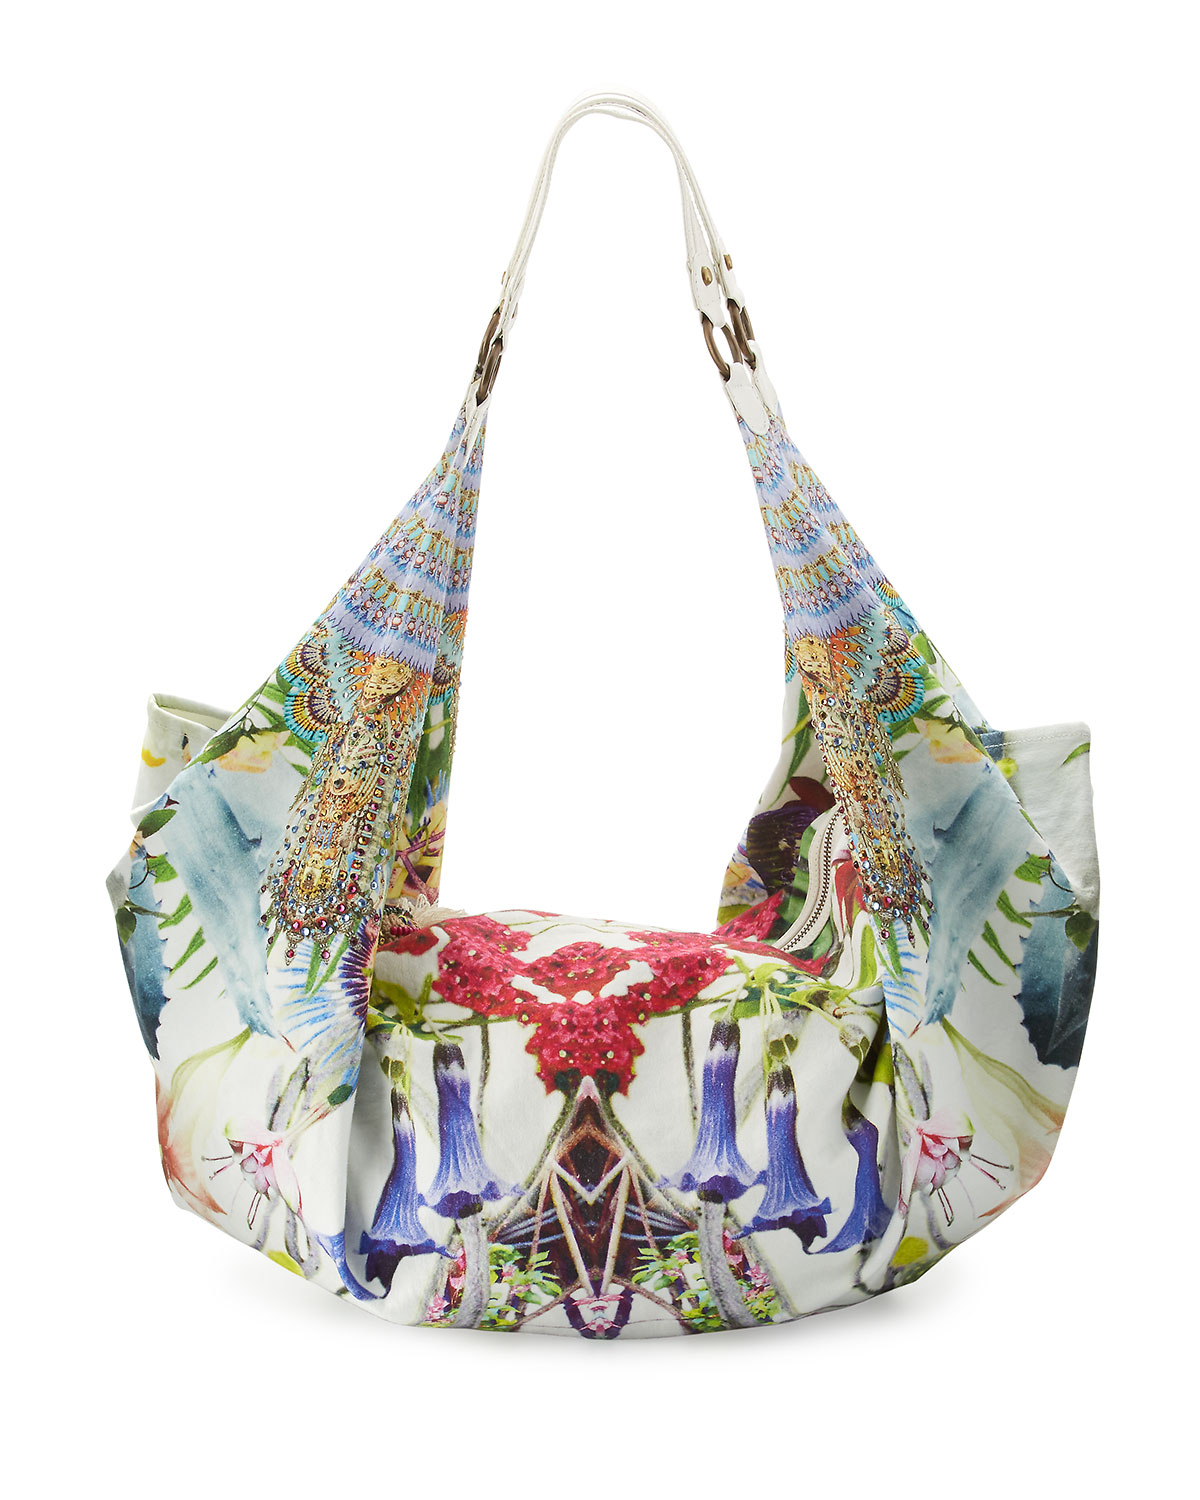 Embellished Soft Beach Bag, Exotic Hypnotic